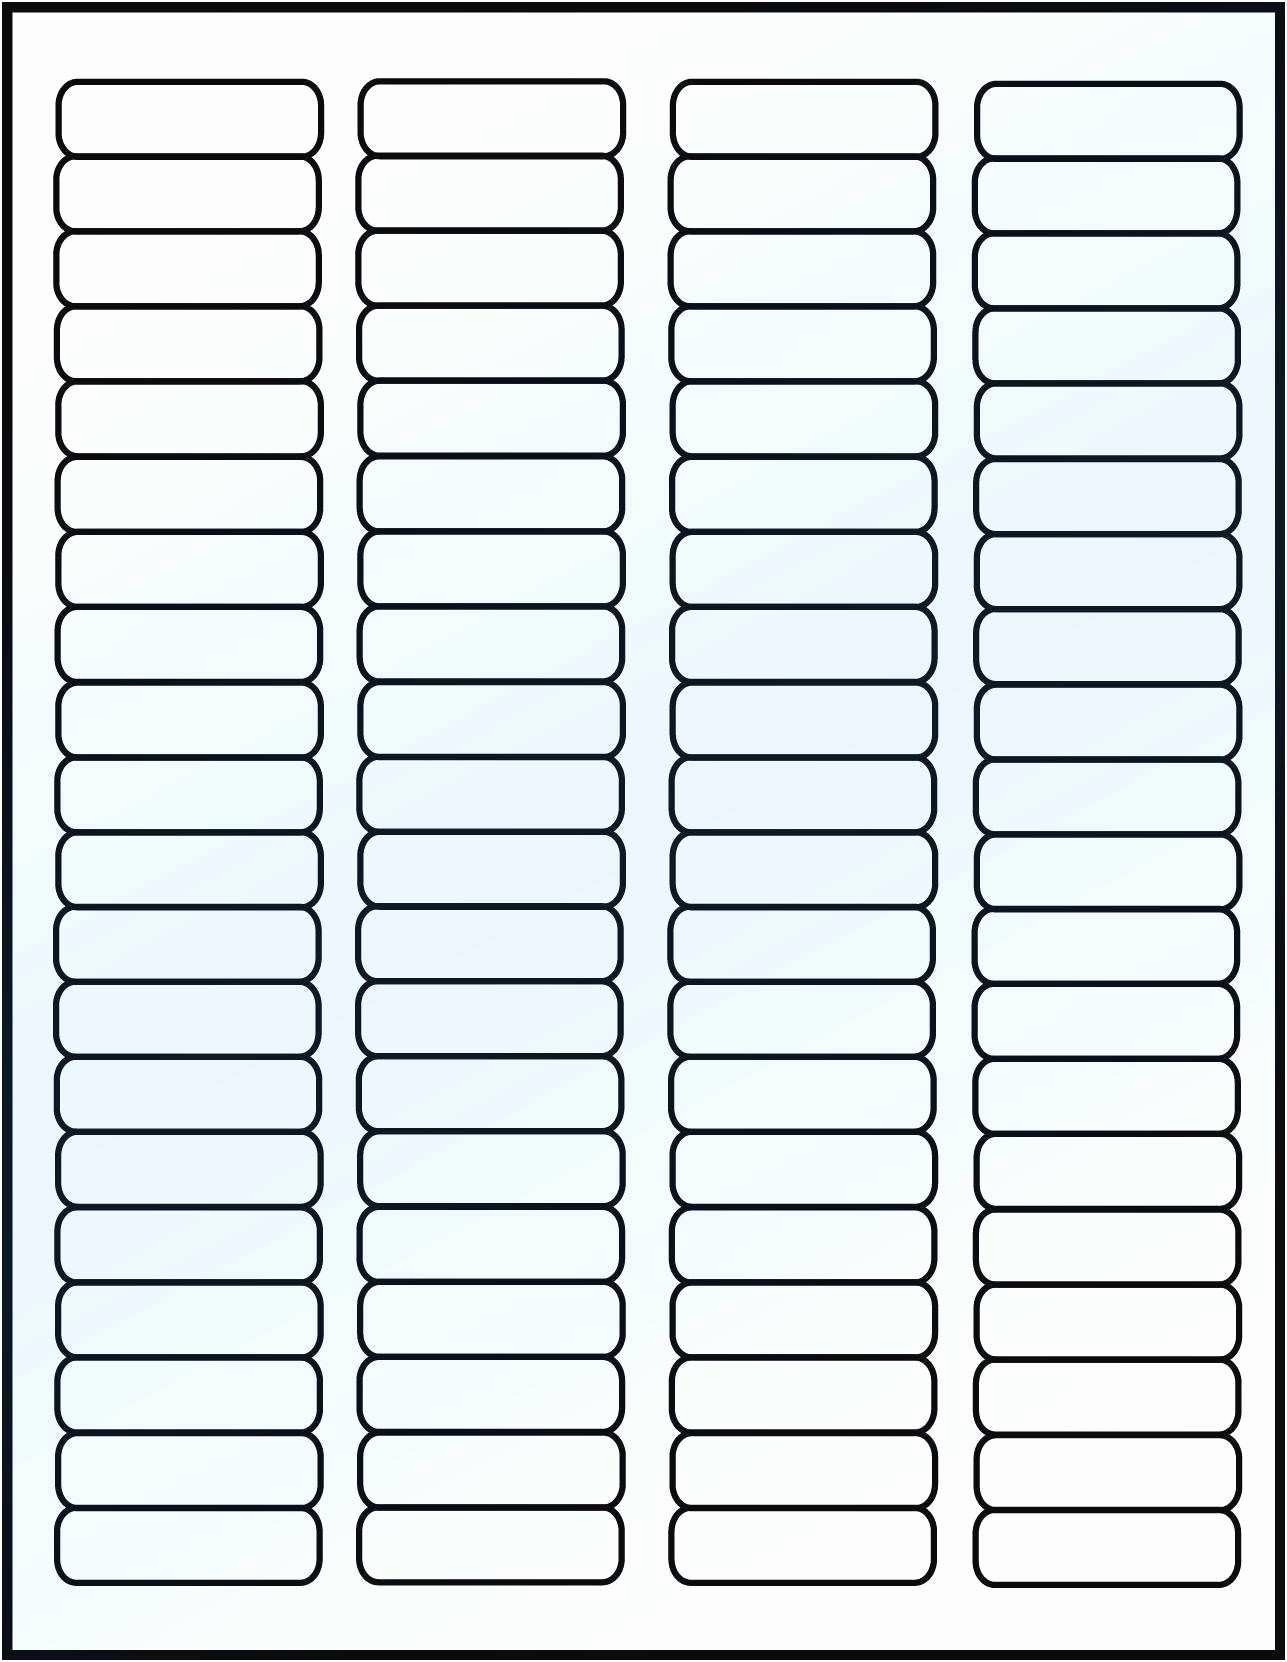 Avery 30 Up Labels Template Beautiful Fresh Avery 30 Label Sheet Template